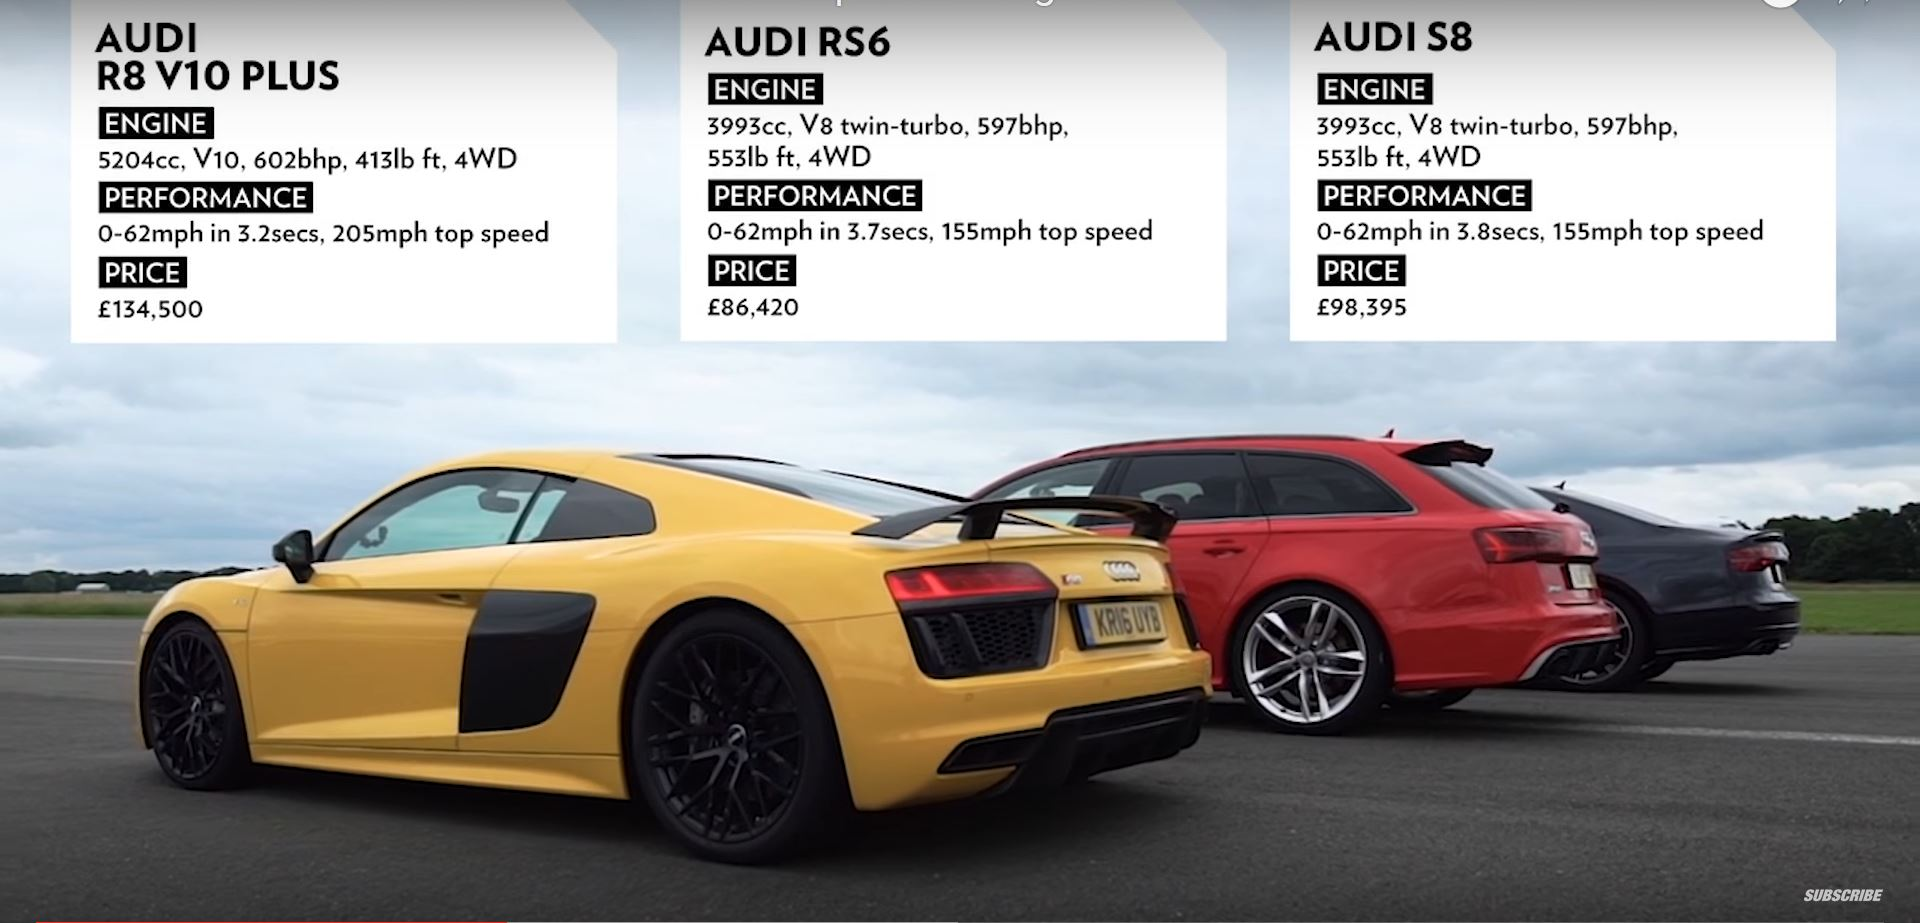 Audi R8 V10 Plus Vs. RS6 Vs. S8: The Lord Of The Rings Drag Race